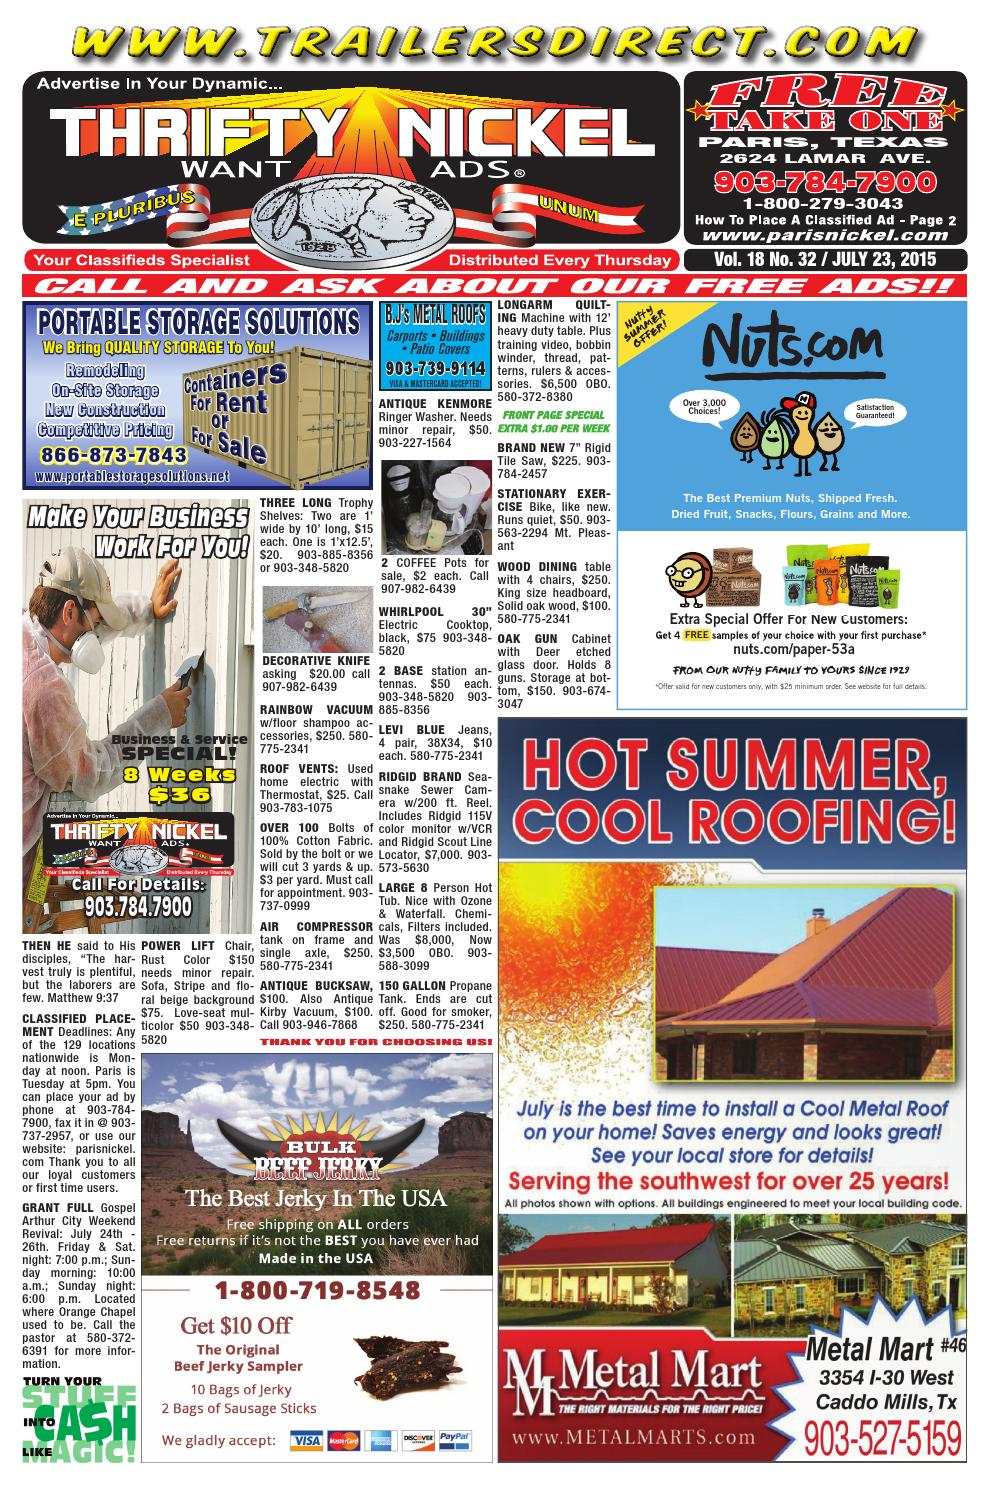 July 23, 2015 web edition by Paris Thrifty Nickel/American ...